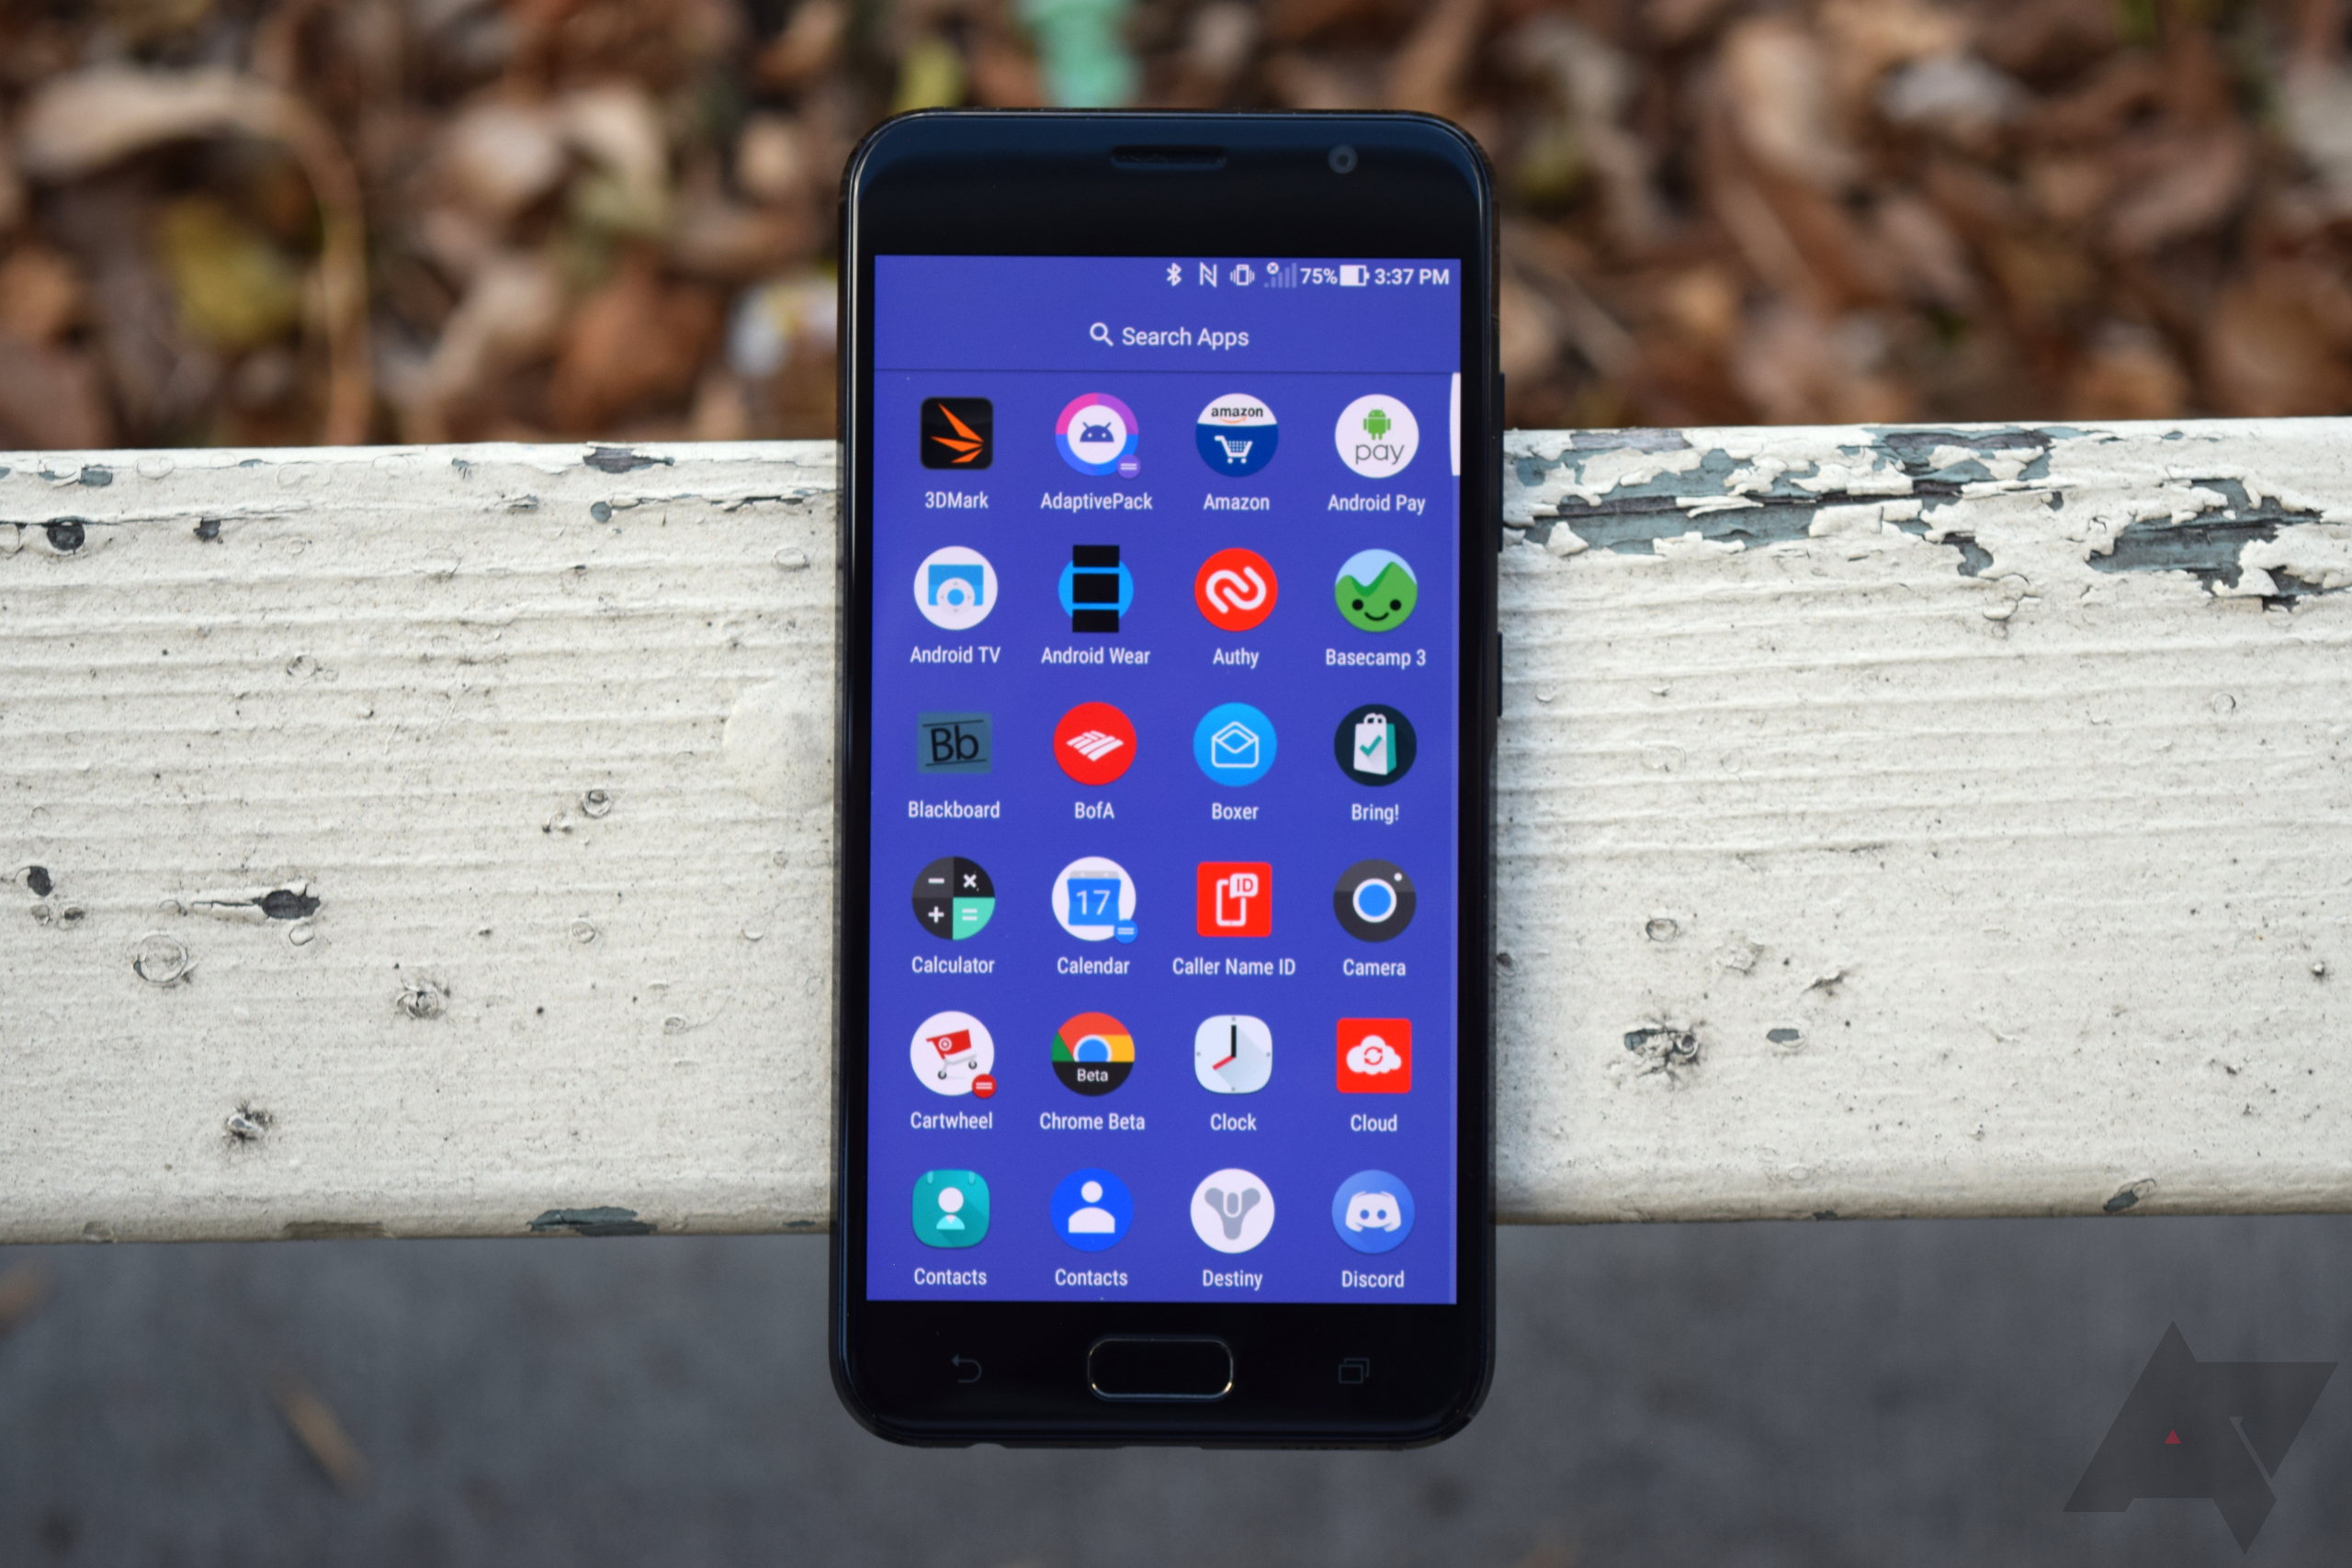 ASUS Zenfone V review: A very cheap Verizon exclusive that gets the